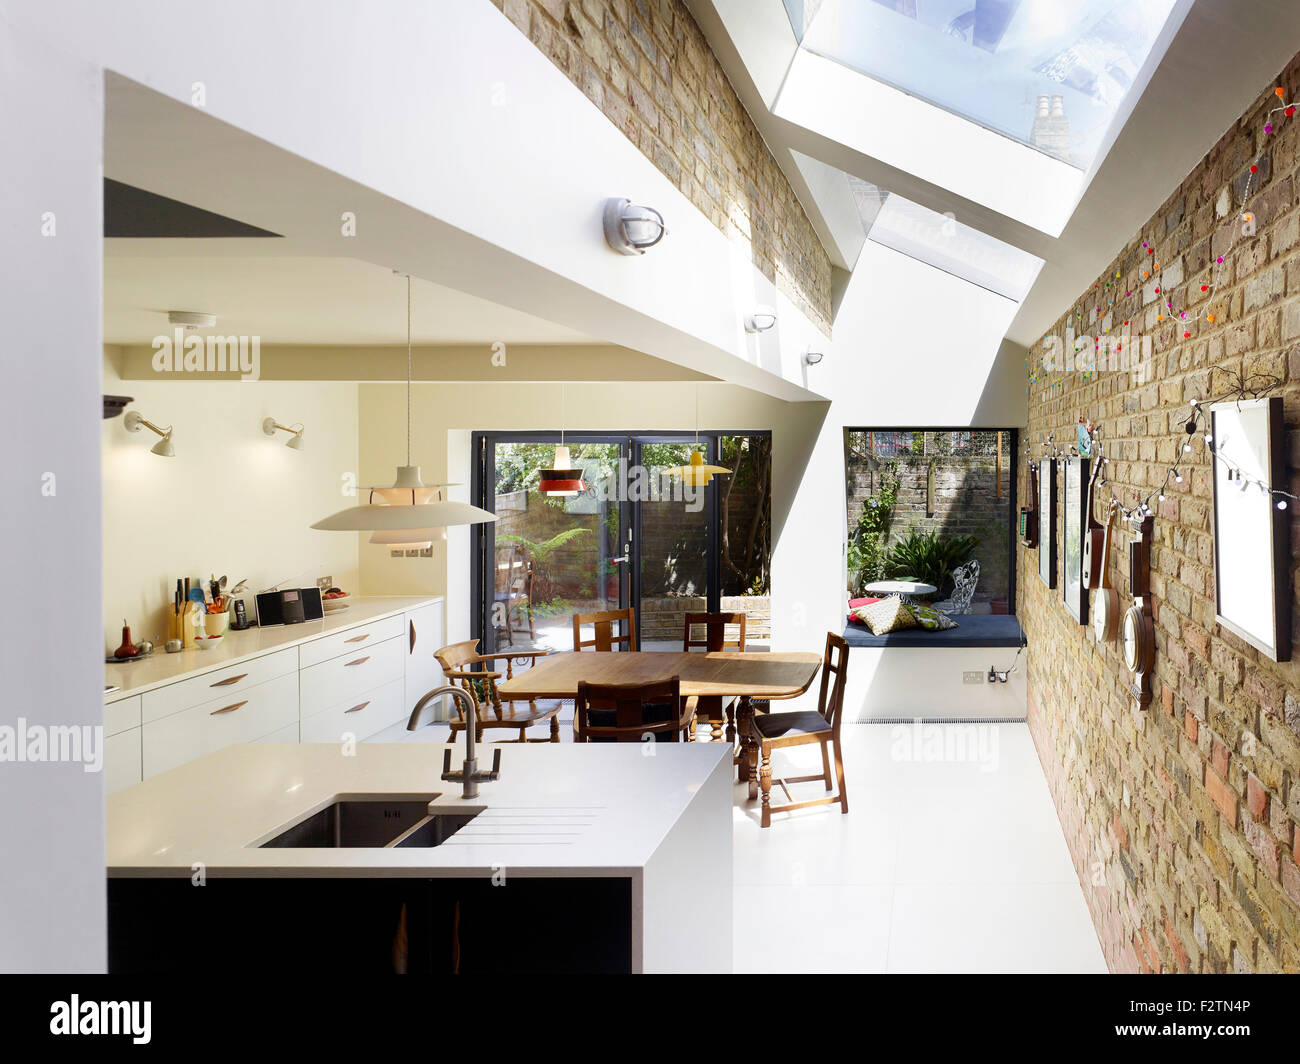 Kitchen view with exposed brick wall and rooflight princess may terraced home london united kingdom architect ullmayer sylv